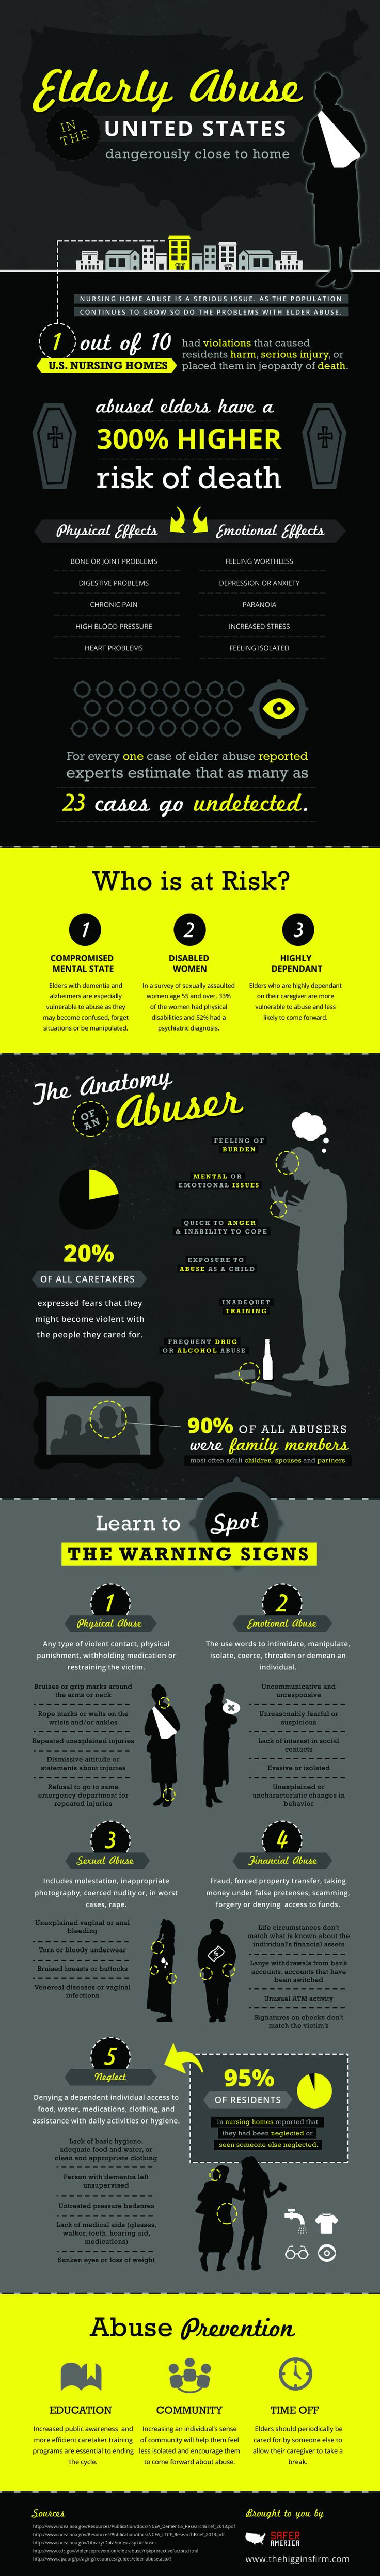 Elderly Abuse: Dangerously Close to Home #Infographics — Lightscap3s.com